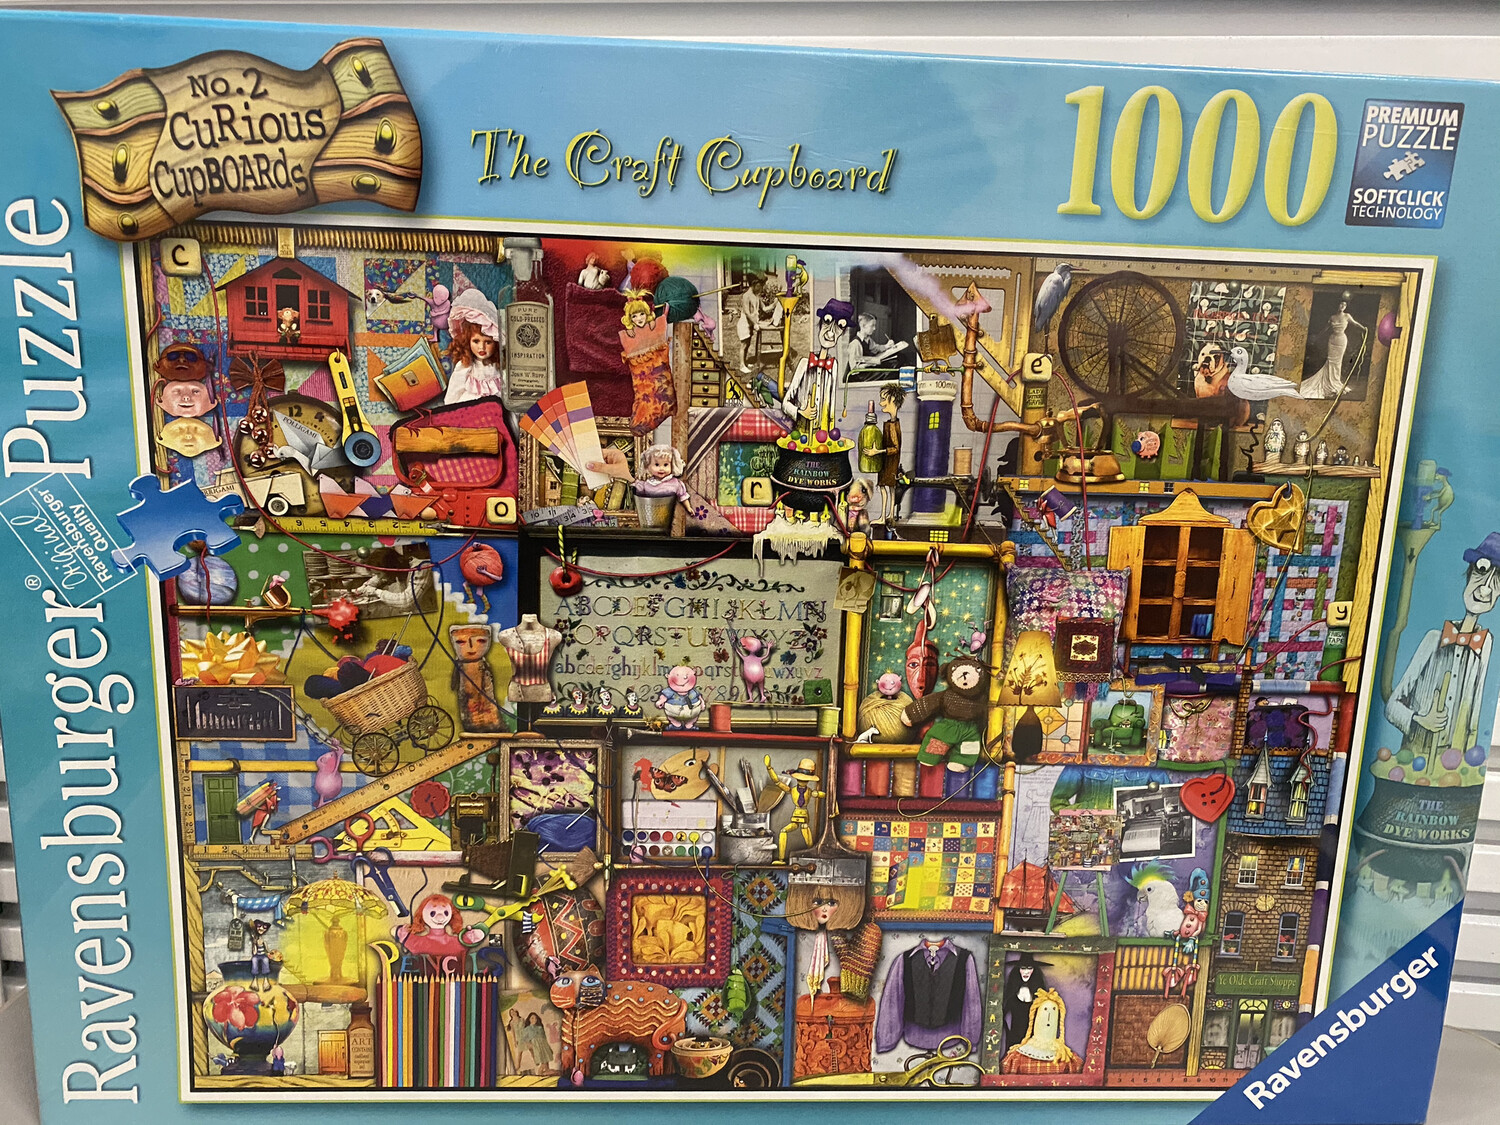 The Craft Cupboard Puzzle